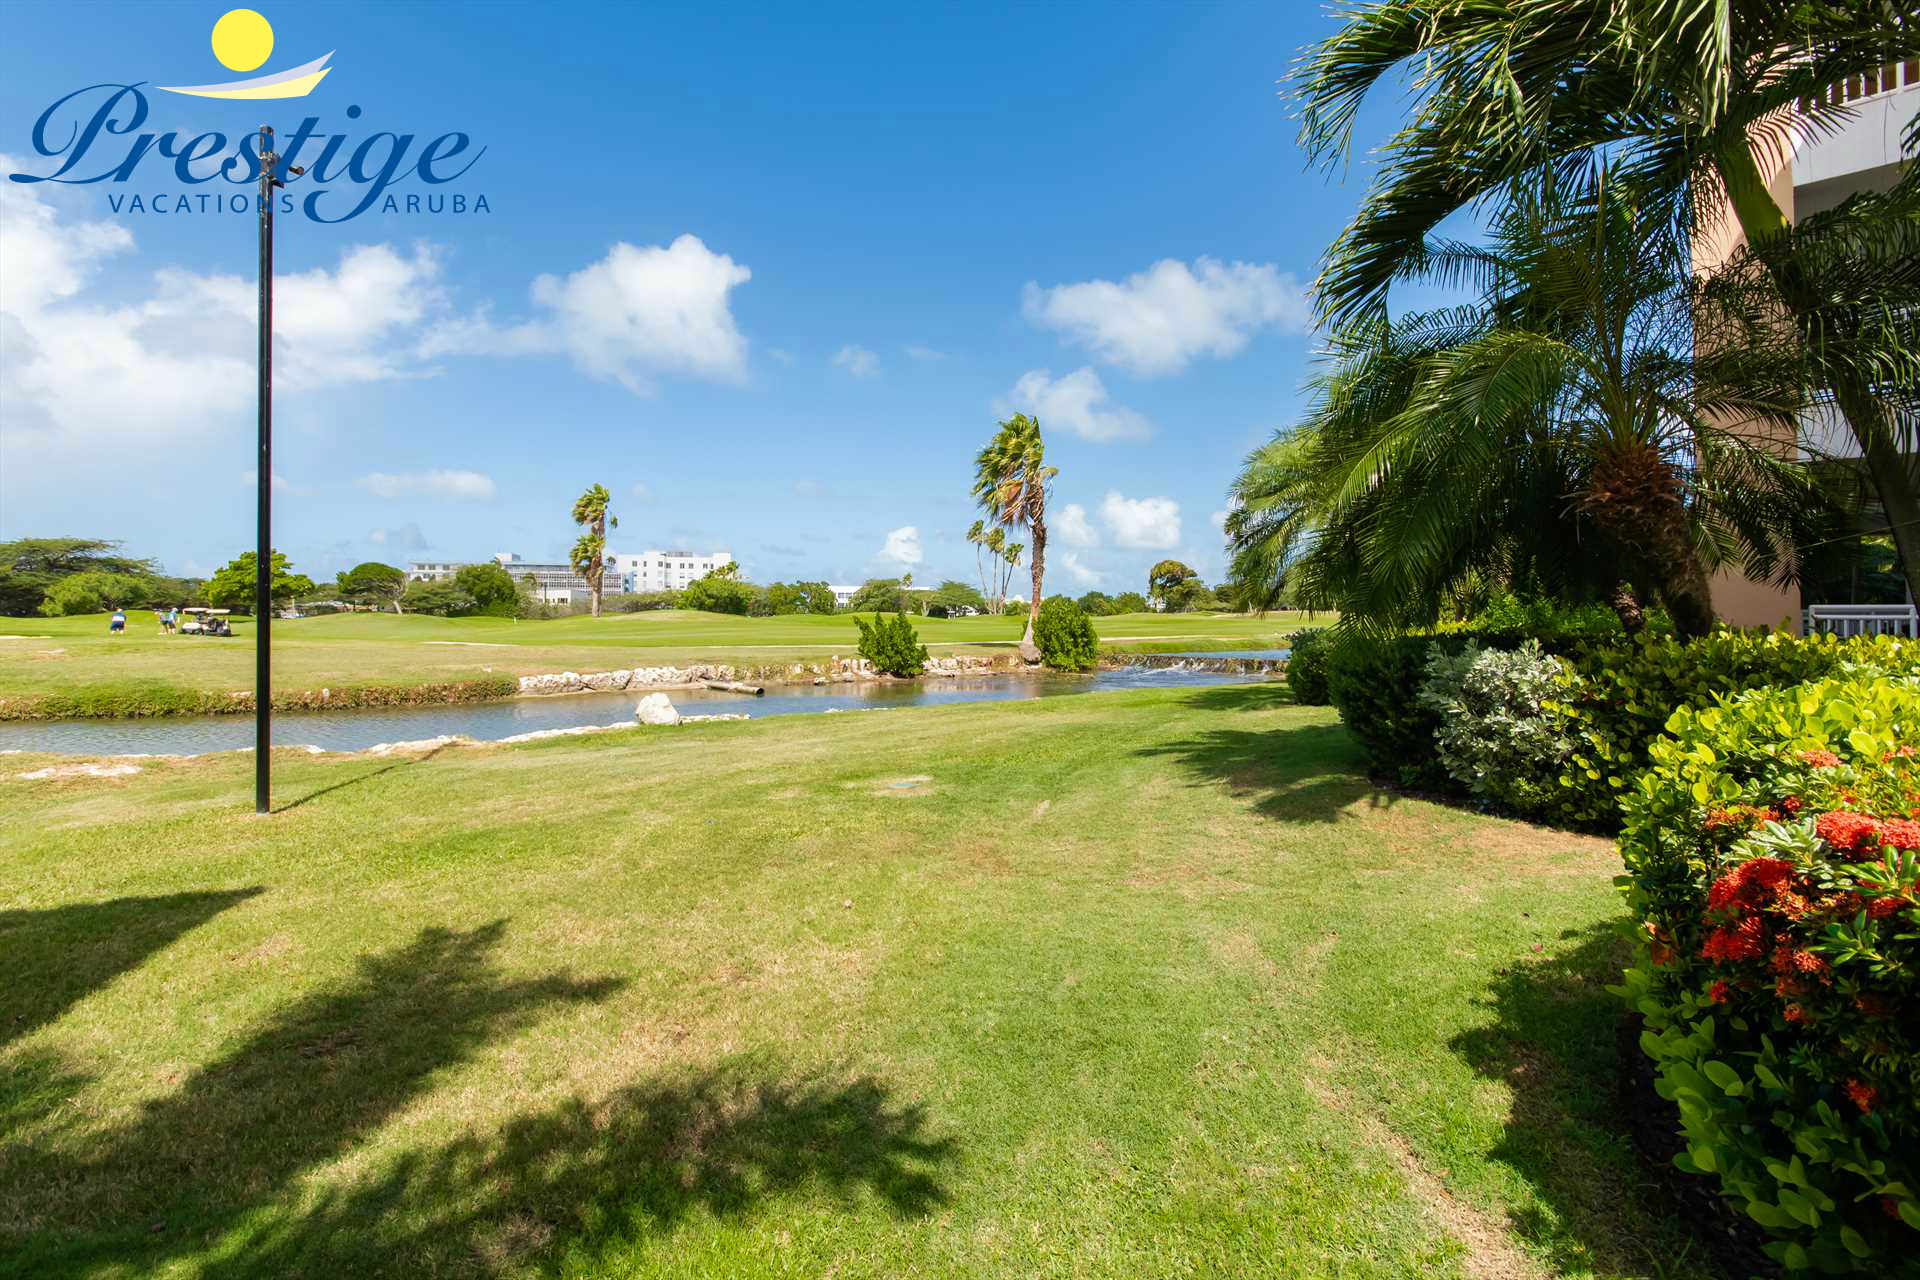 Experience the surrounding garden with beautiful flora and fauna of this resort